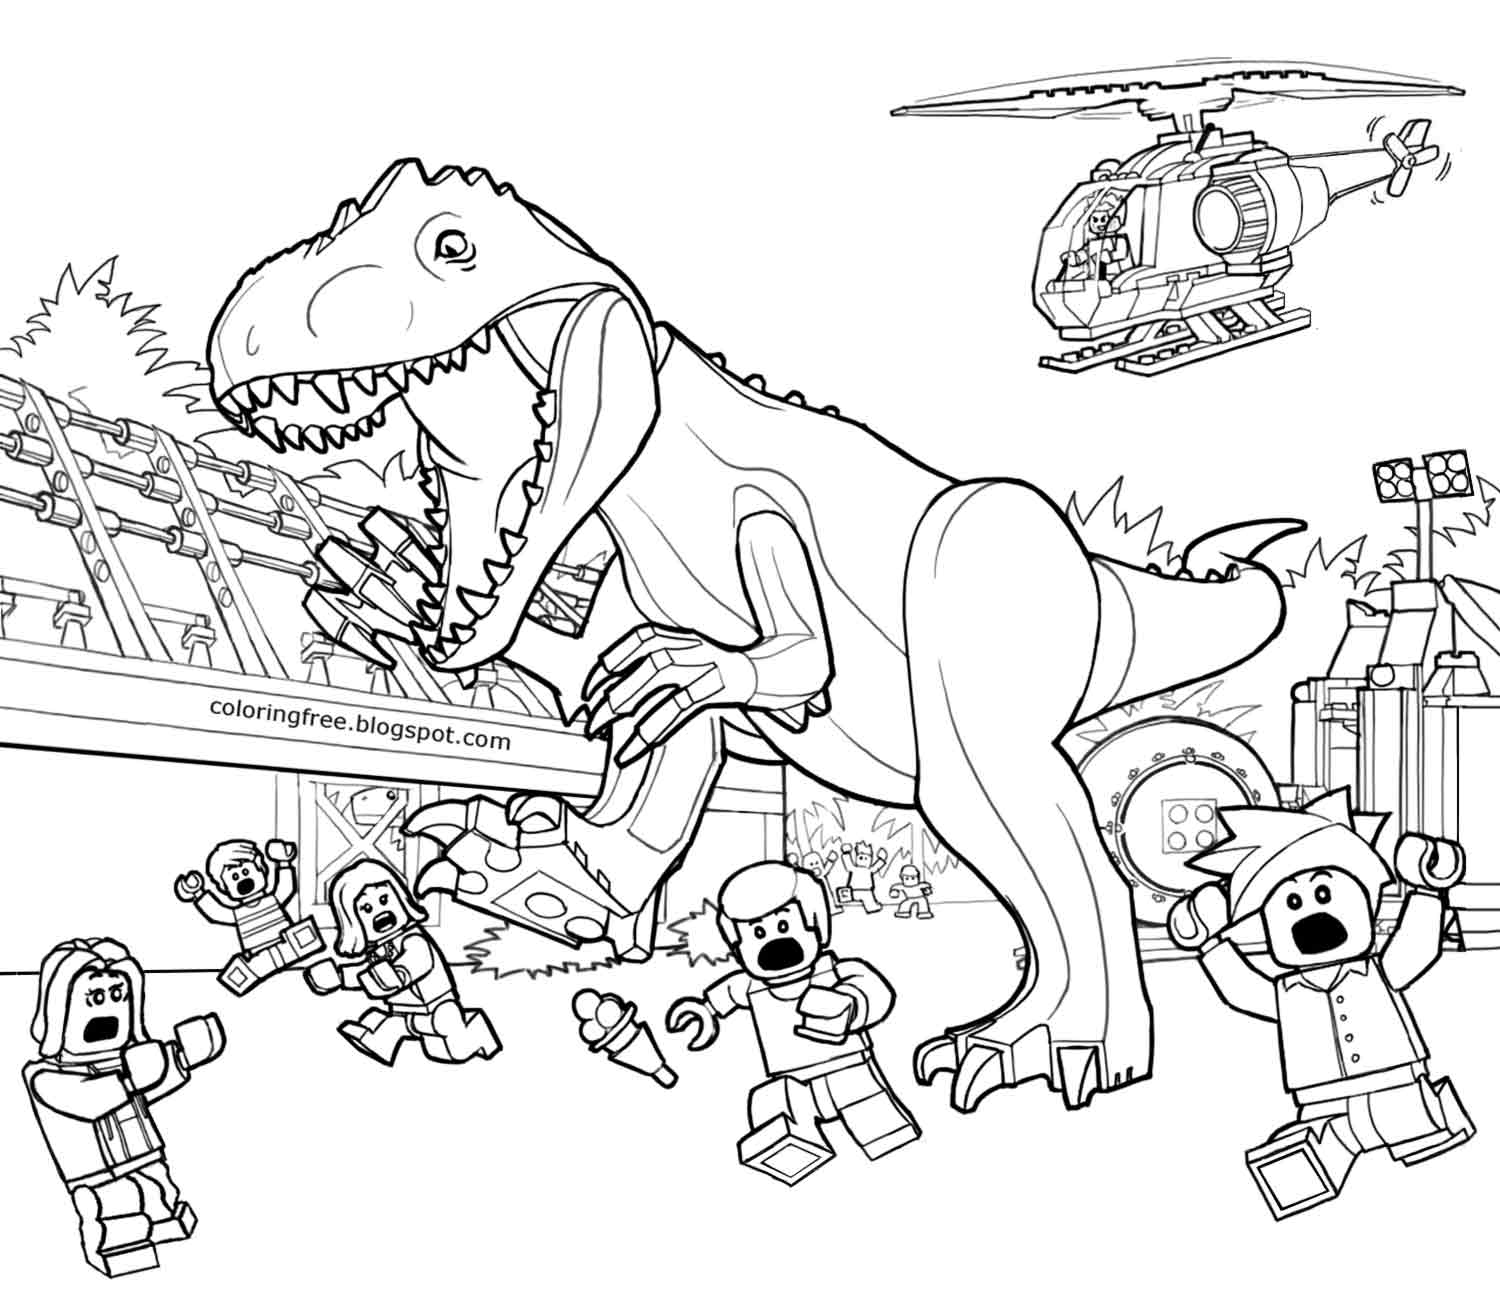 Free coloring pages jurassic world - Lego Dino Coloring Pages